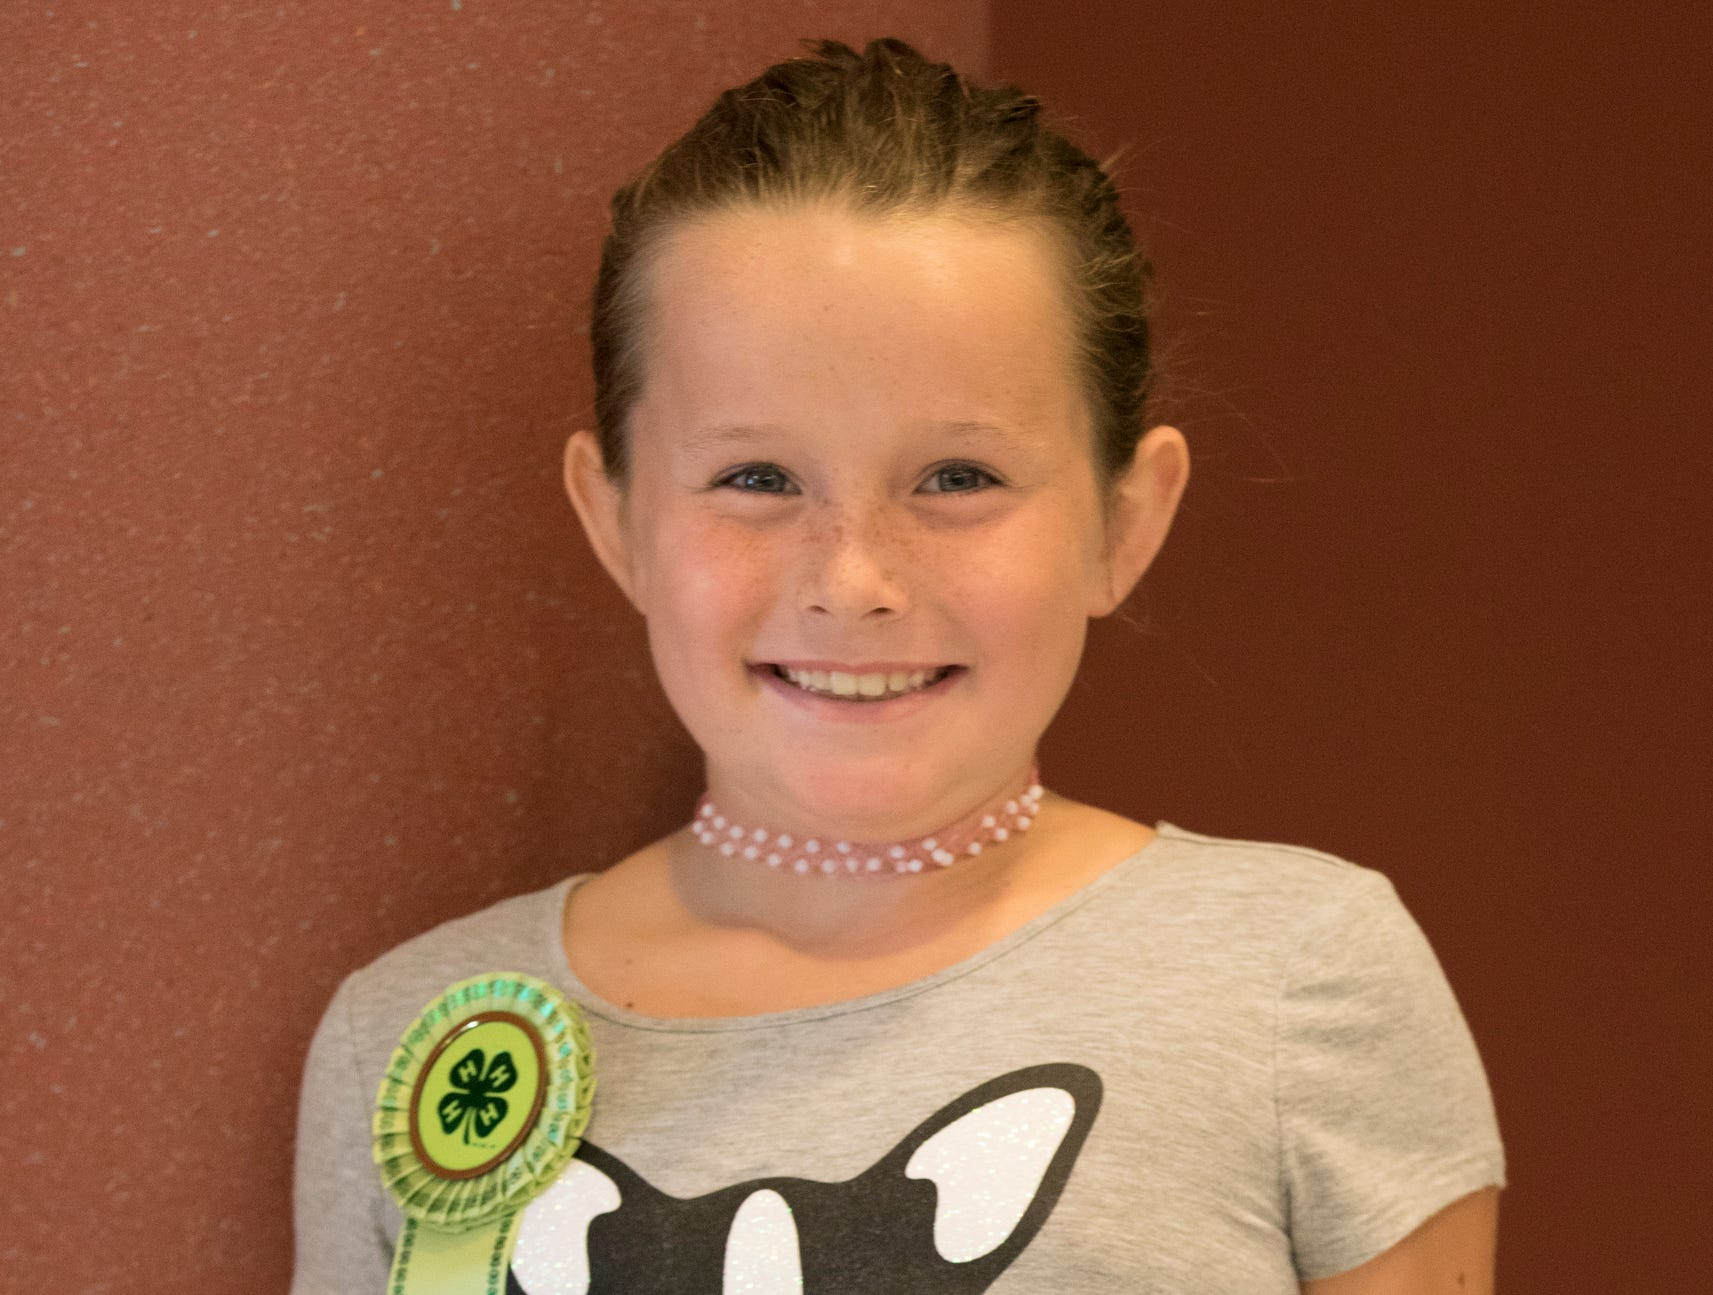 Savannah Jenkins, 9, All American Achievers. Project: Staying Healthy